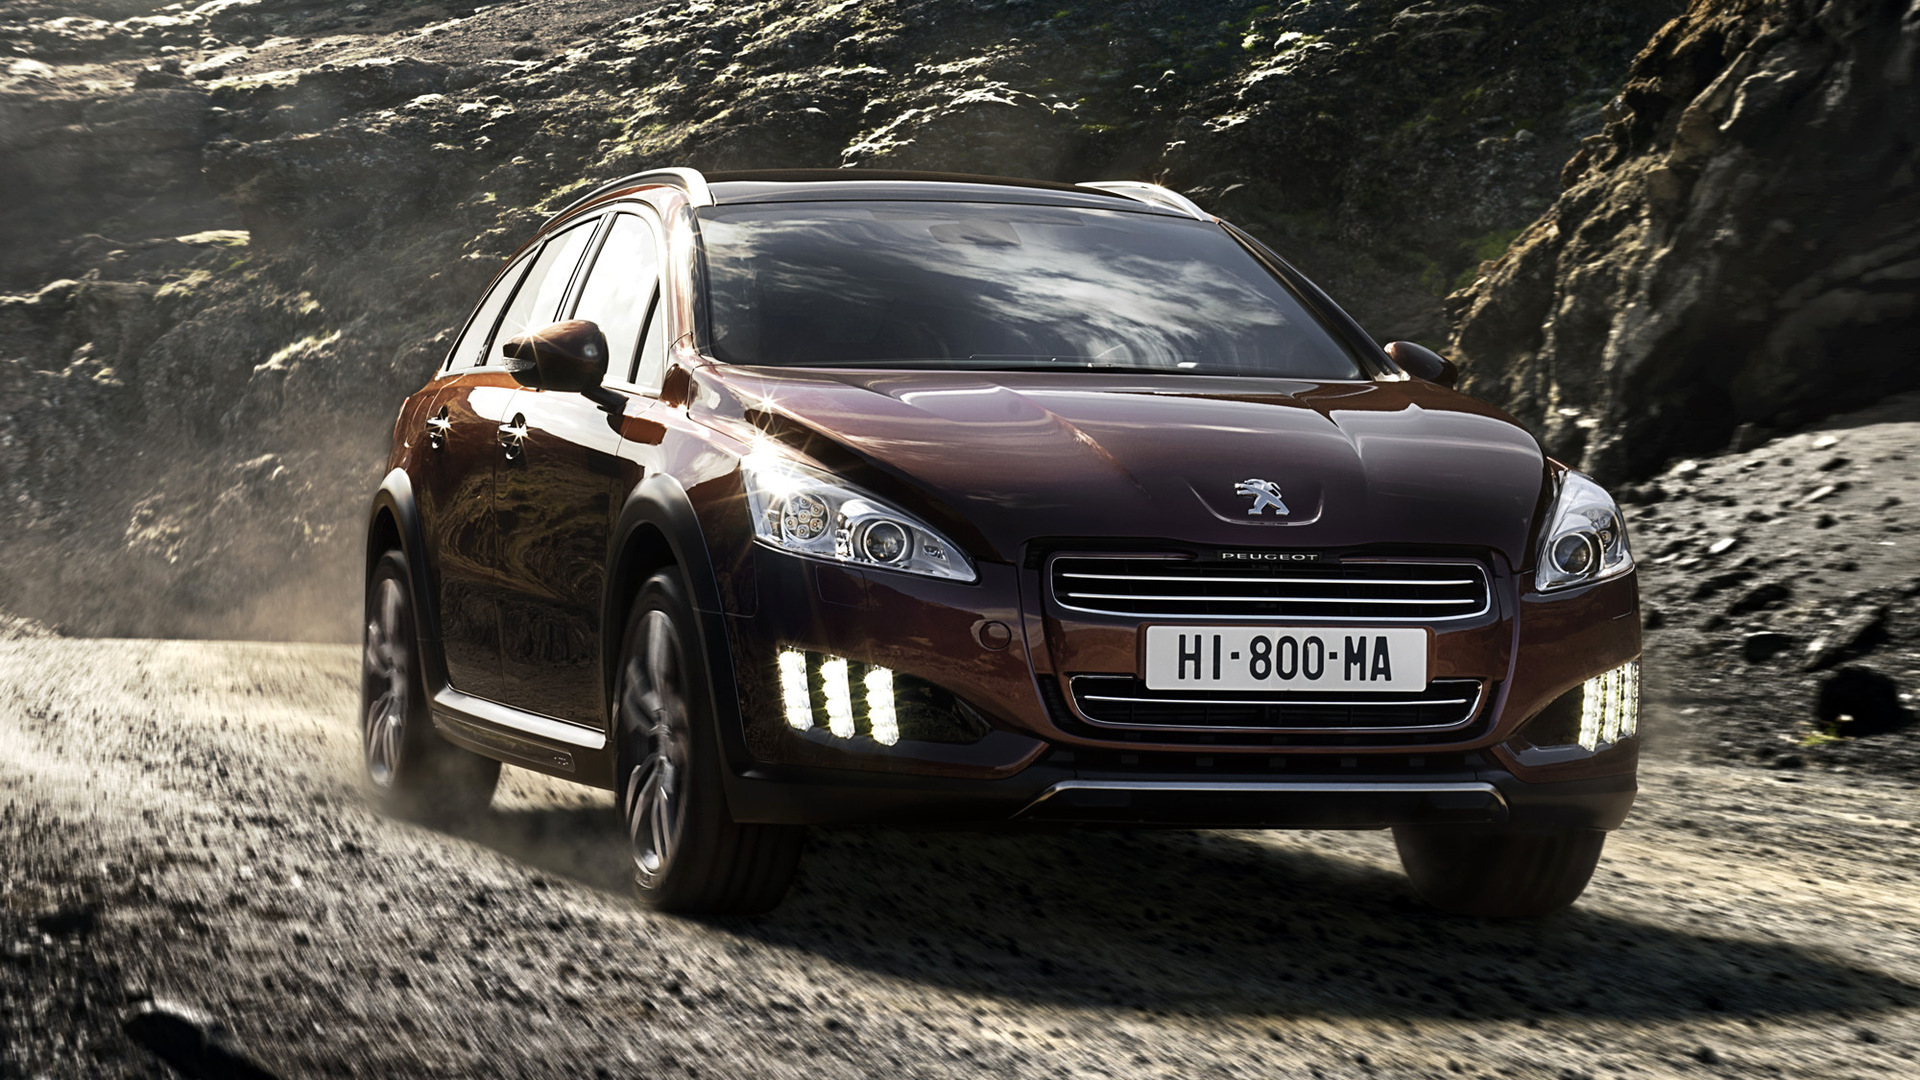 2012 Peugeot 508 RXH   Wallpapers and HD Images Car Pixel 1920x1080